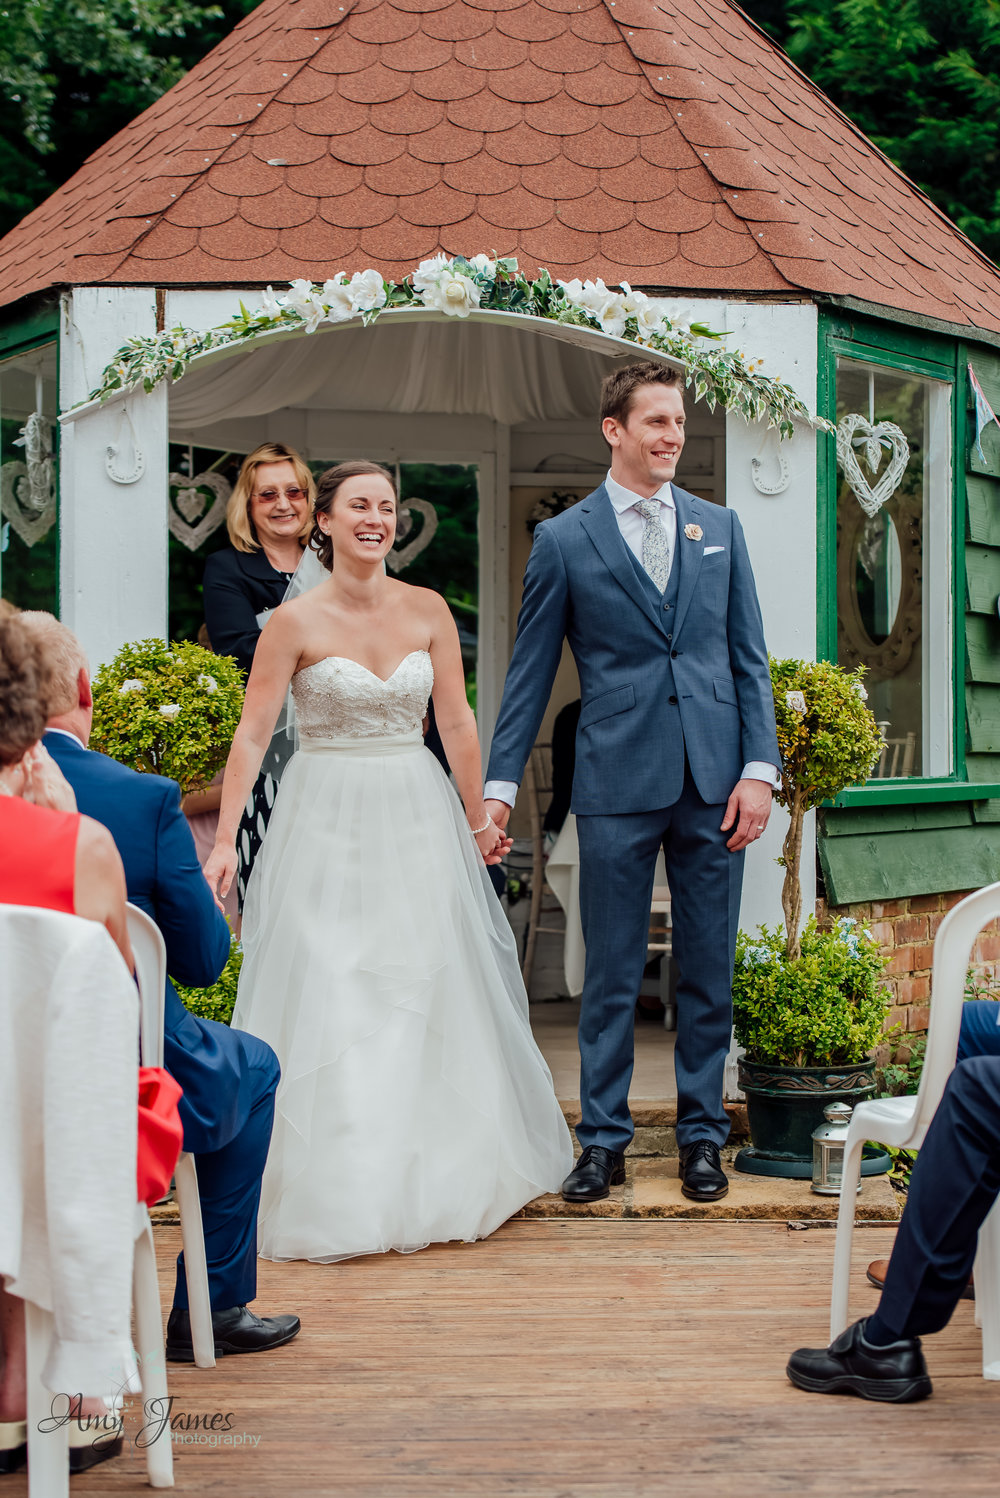 Outdoor garden wedding ceremony photograph by Amy James Photography Hampshire Wedding Photographer - Taplins Place Wedding